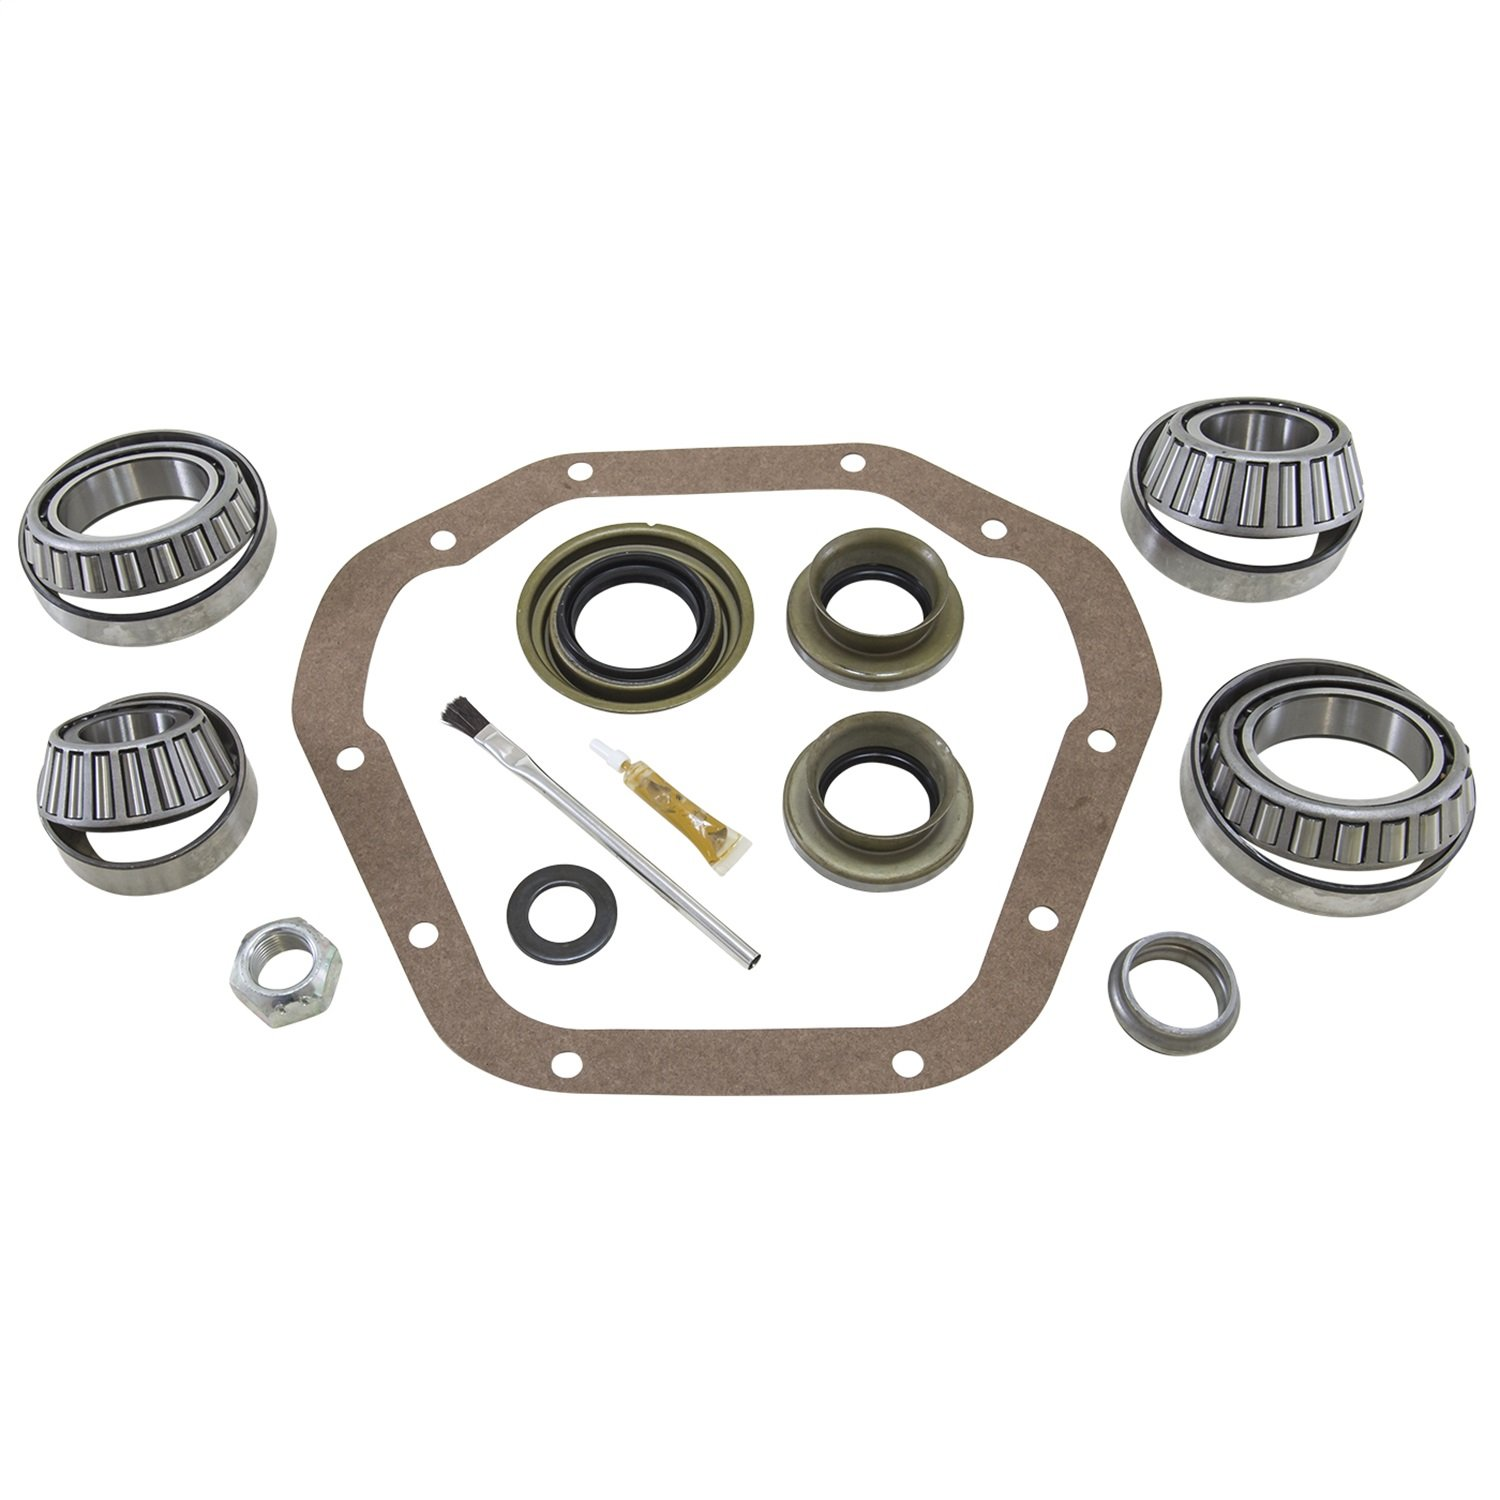 Bearing Kit for Dana 80 Differential ZBKD80-A USA Standard Gear 4.125 O.D